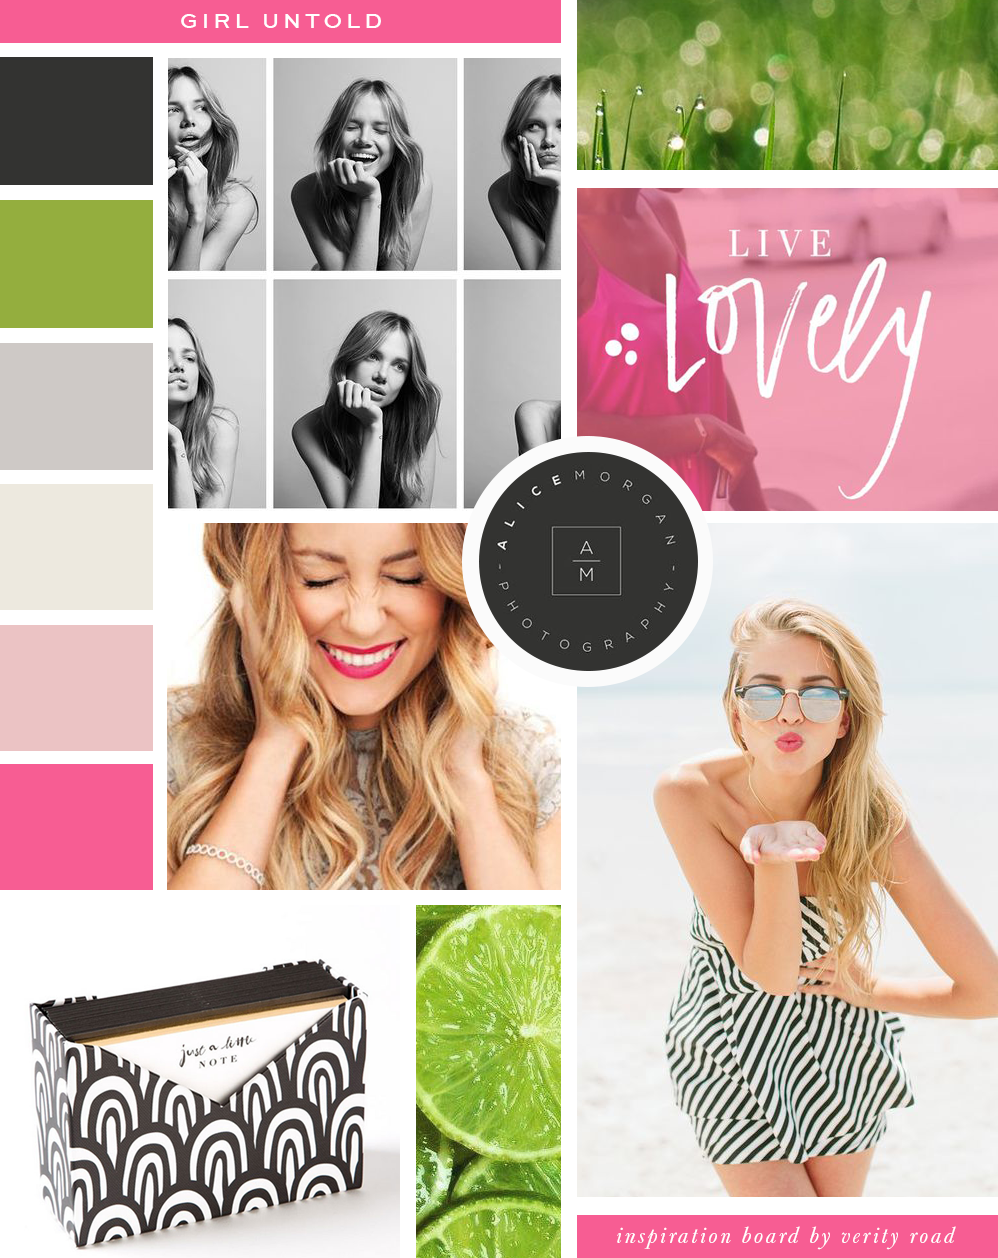 Mood board, inspiration board, branding, brand design, web design, brand styling for Girl Untold. Strong, bold and bright feminine branding and custom website design. Girl Untold is a social movement empowering women to smash stigmas, break from societal standards, inspirational leaders, find confidence and self-esteem in themselves as women in life. Pink green black color palette. Fun branding.